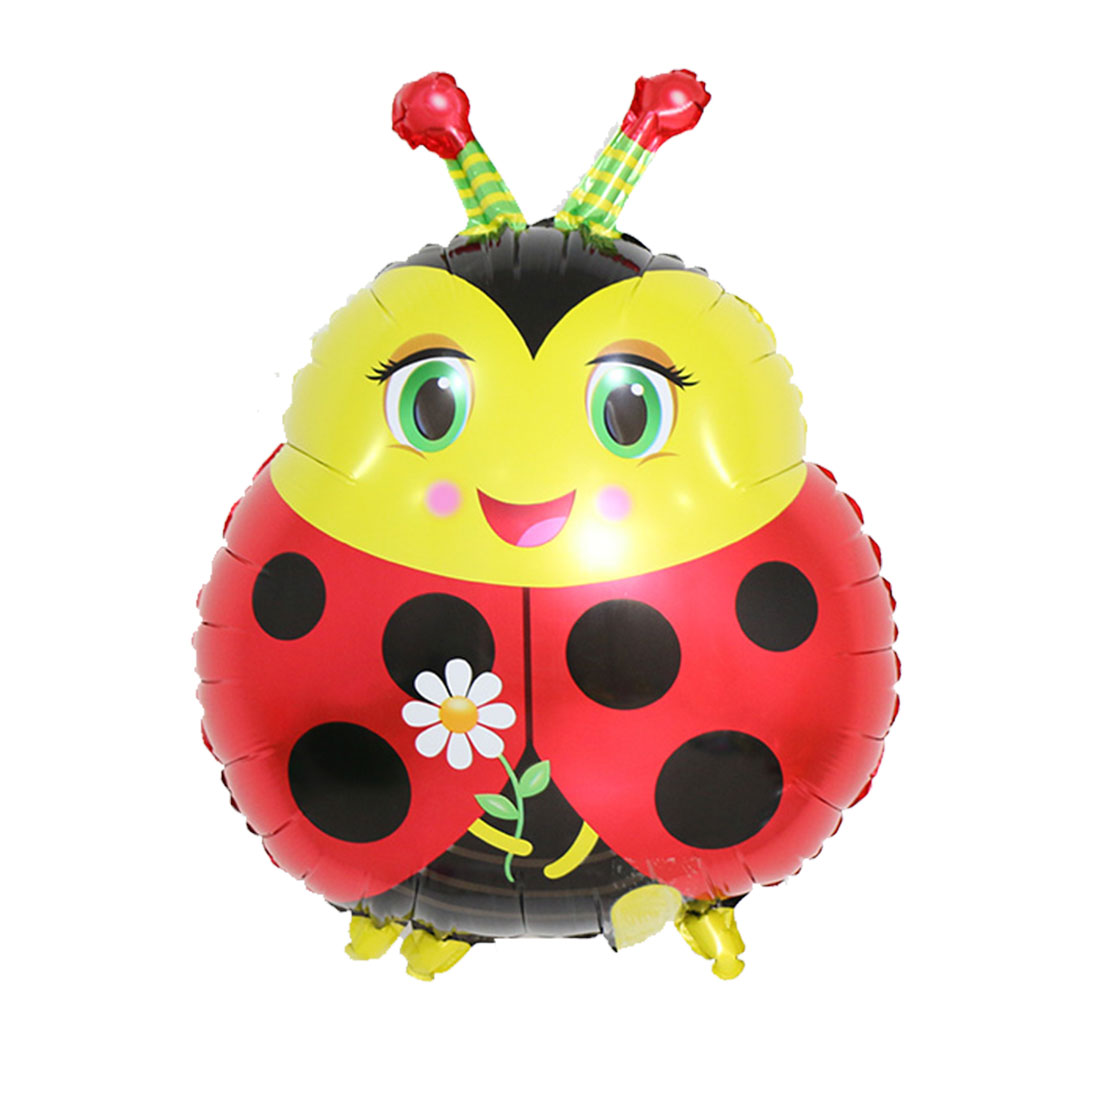 Family Foil Ladybug Design Inflation Balloon DIY Anniversary Celebration Festival Party Decoration 19 Inch